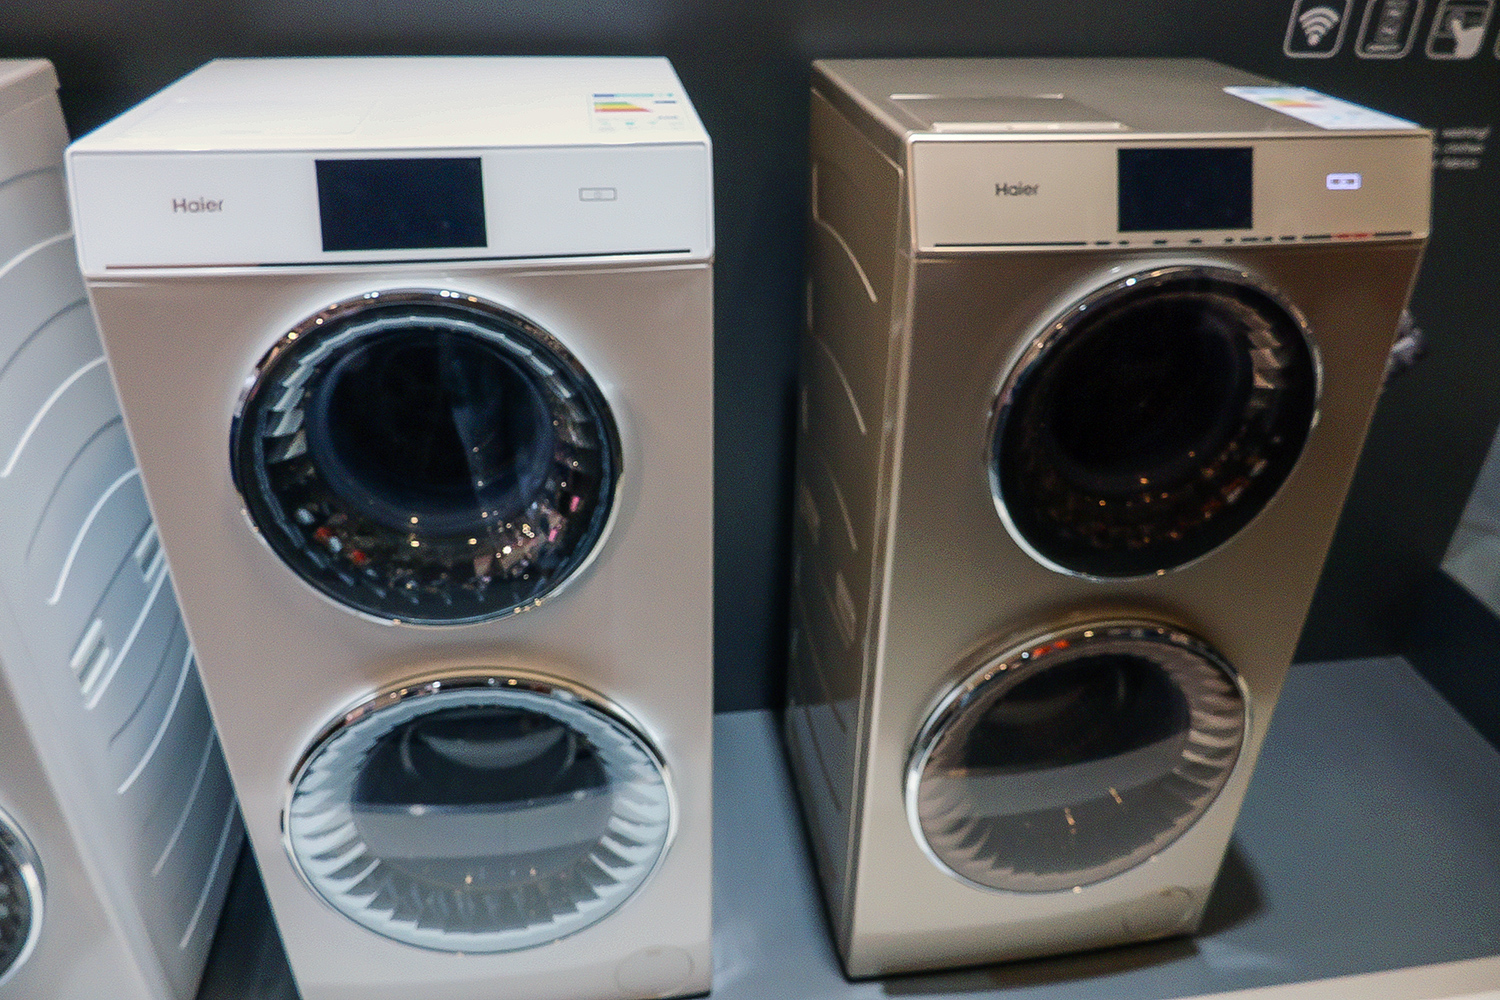 The Haier Duo Is Two Washing Machines In One